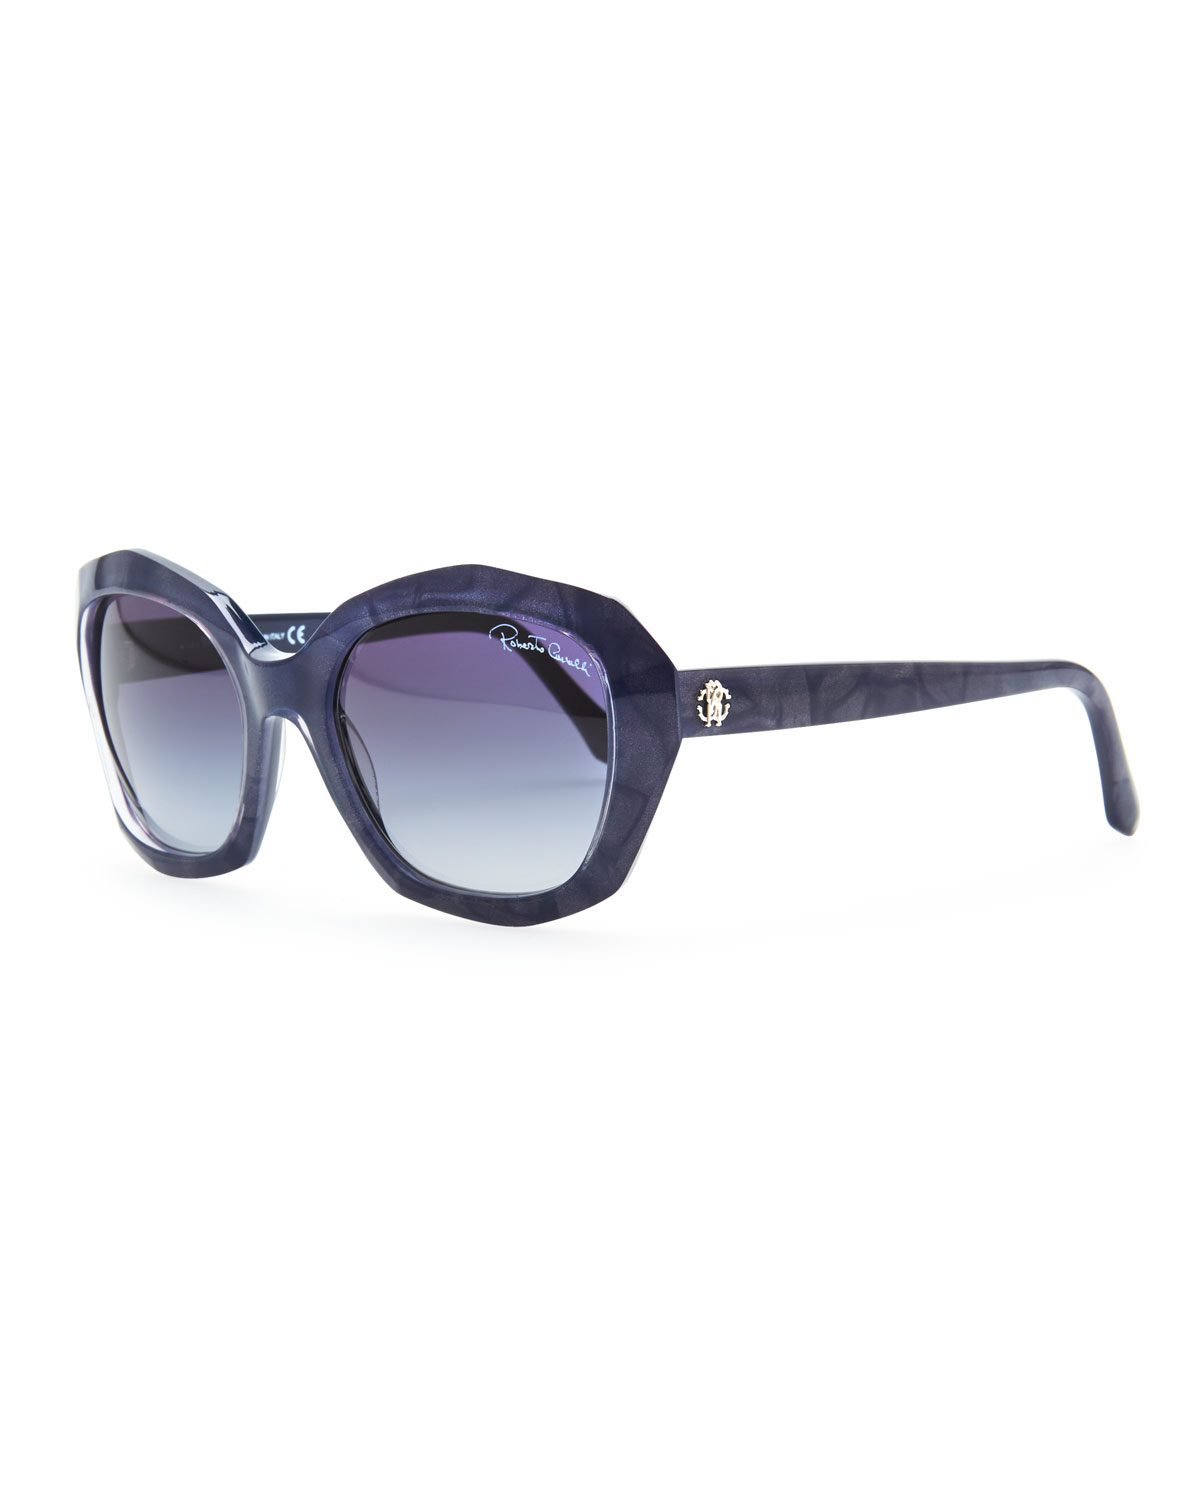 Alathfar Acetate Sunglasses, Iridescent